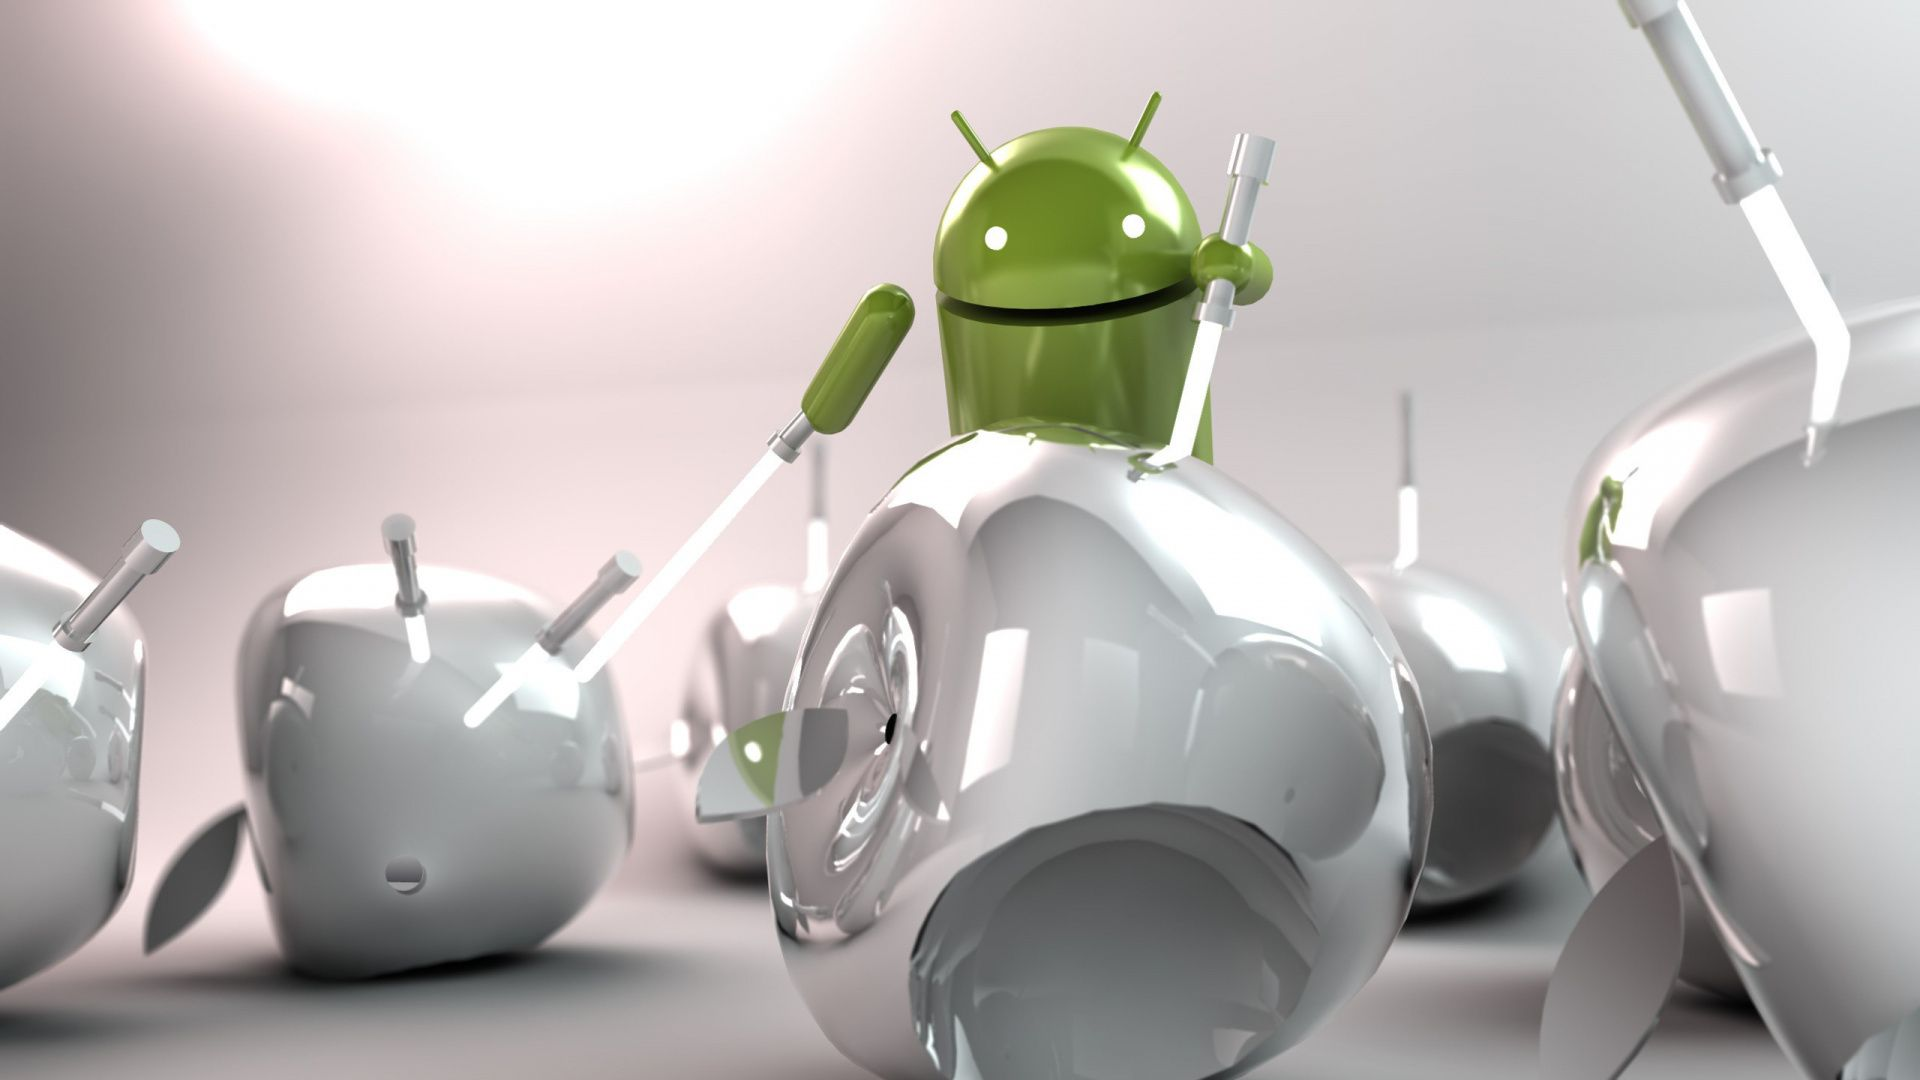 Wallpapers Android Vs Apple